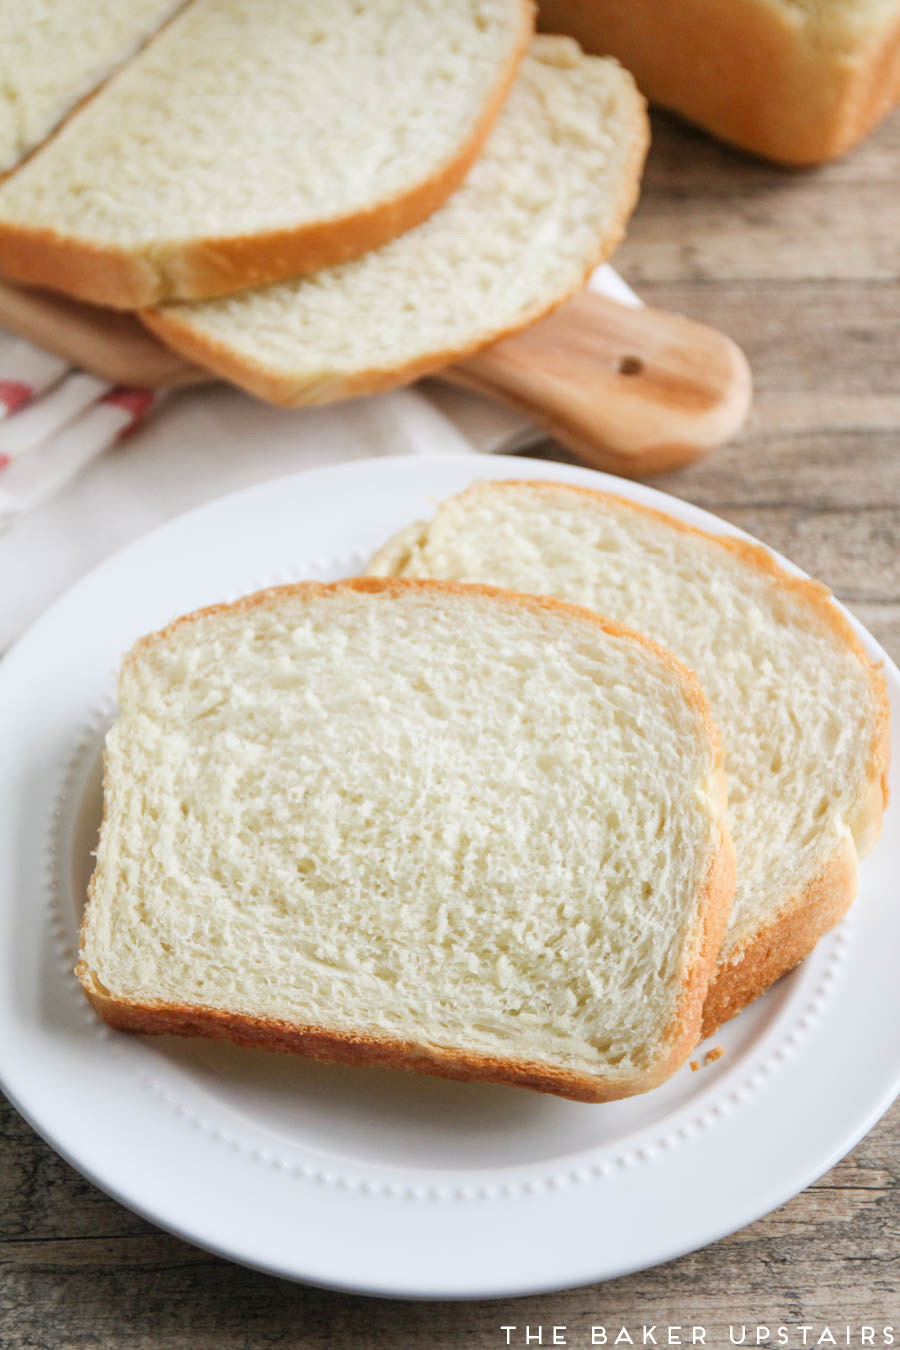 The Baker Upstairs: the best white sandwich bread